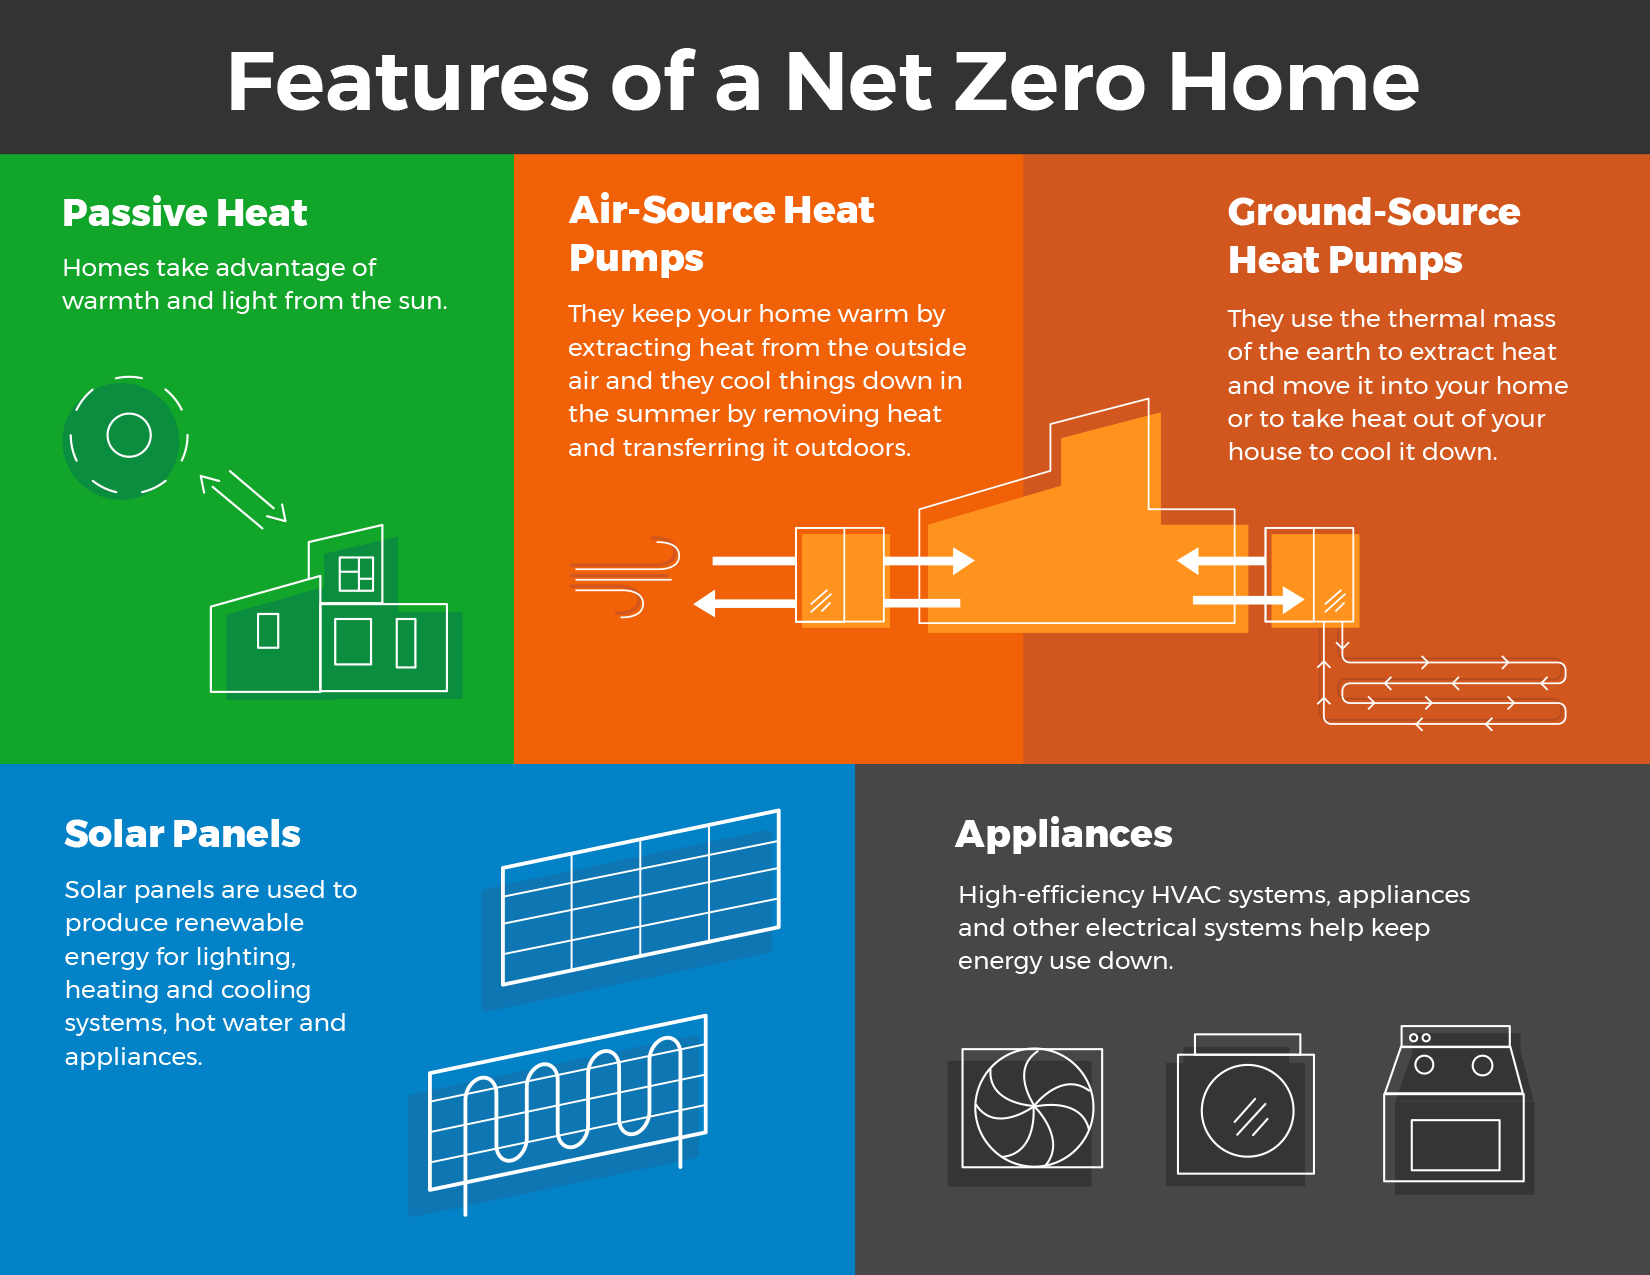 Features of a Net Zero home infographic and link to larger image